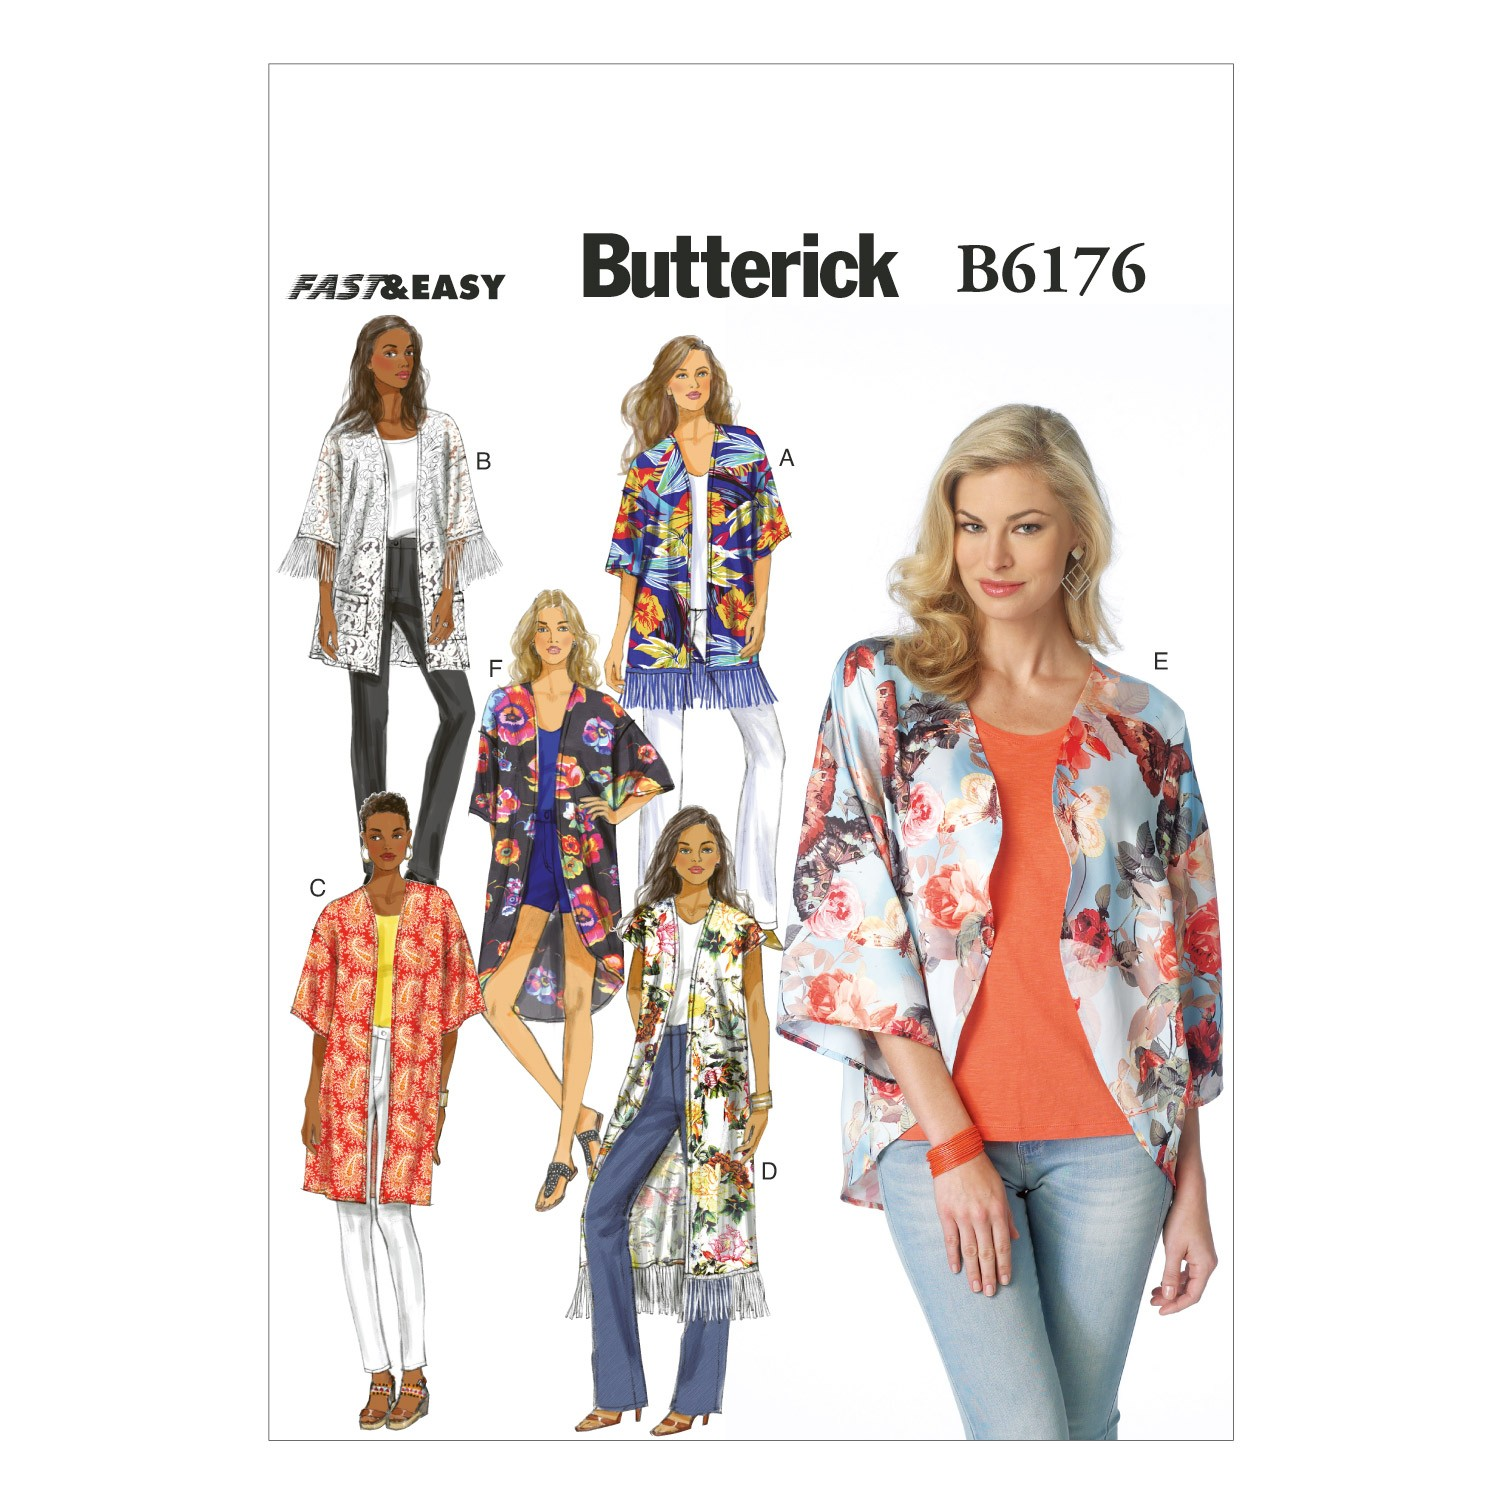 Butterick Sewing Pattern 6176 Misses' Japanese Kimono Style Top